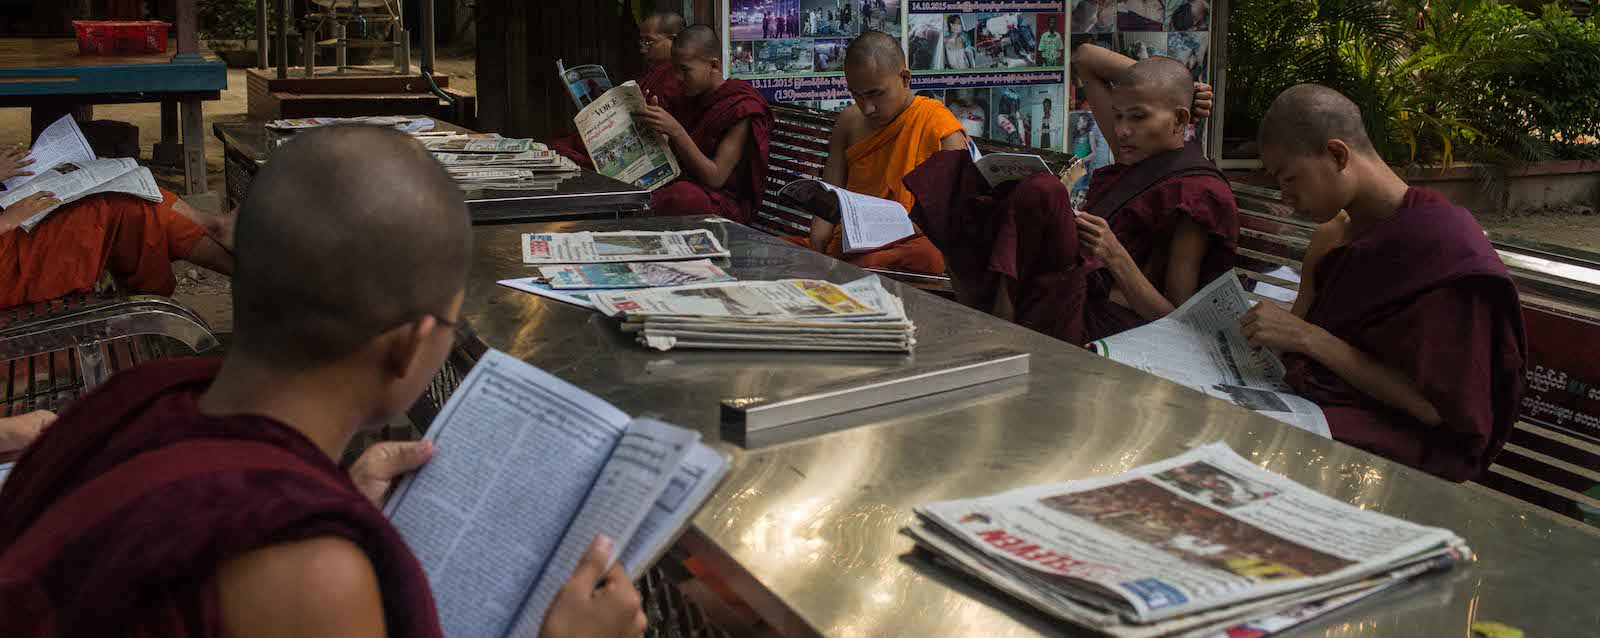 Monks at the Masoeyein Monastery read newspapers in Mandalay, (Photo: Lauren DeCicca/Getty)